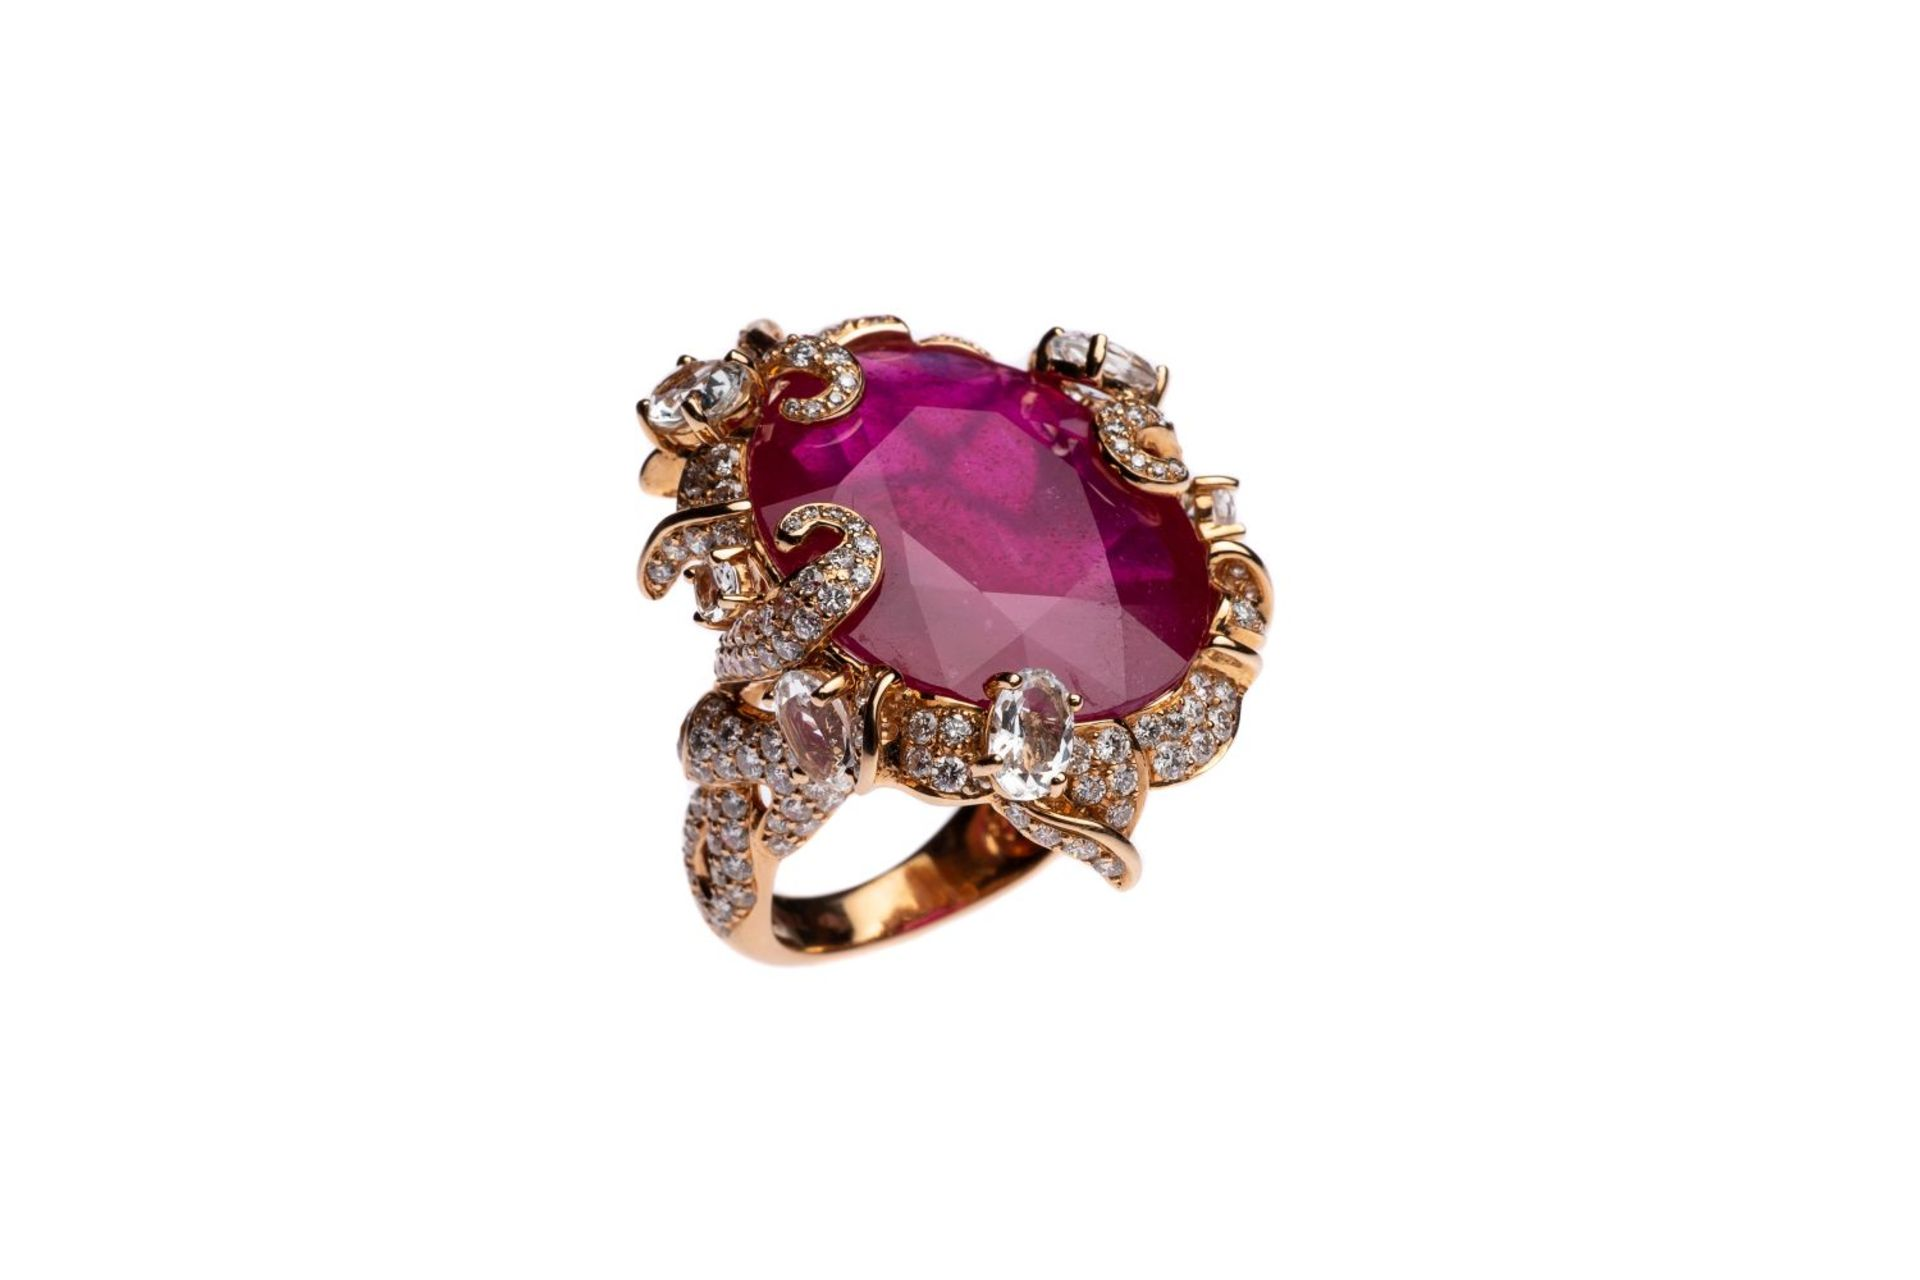 Los 123 - Cocktail ring18Kt rosegold Cocktail ring with diamonds total carat weight approx. 3 ct, one ruby